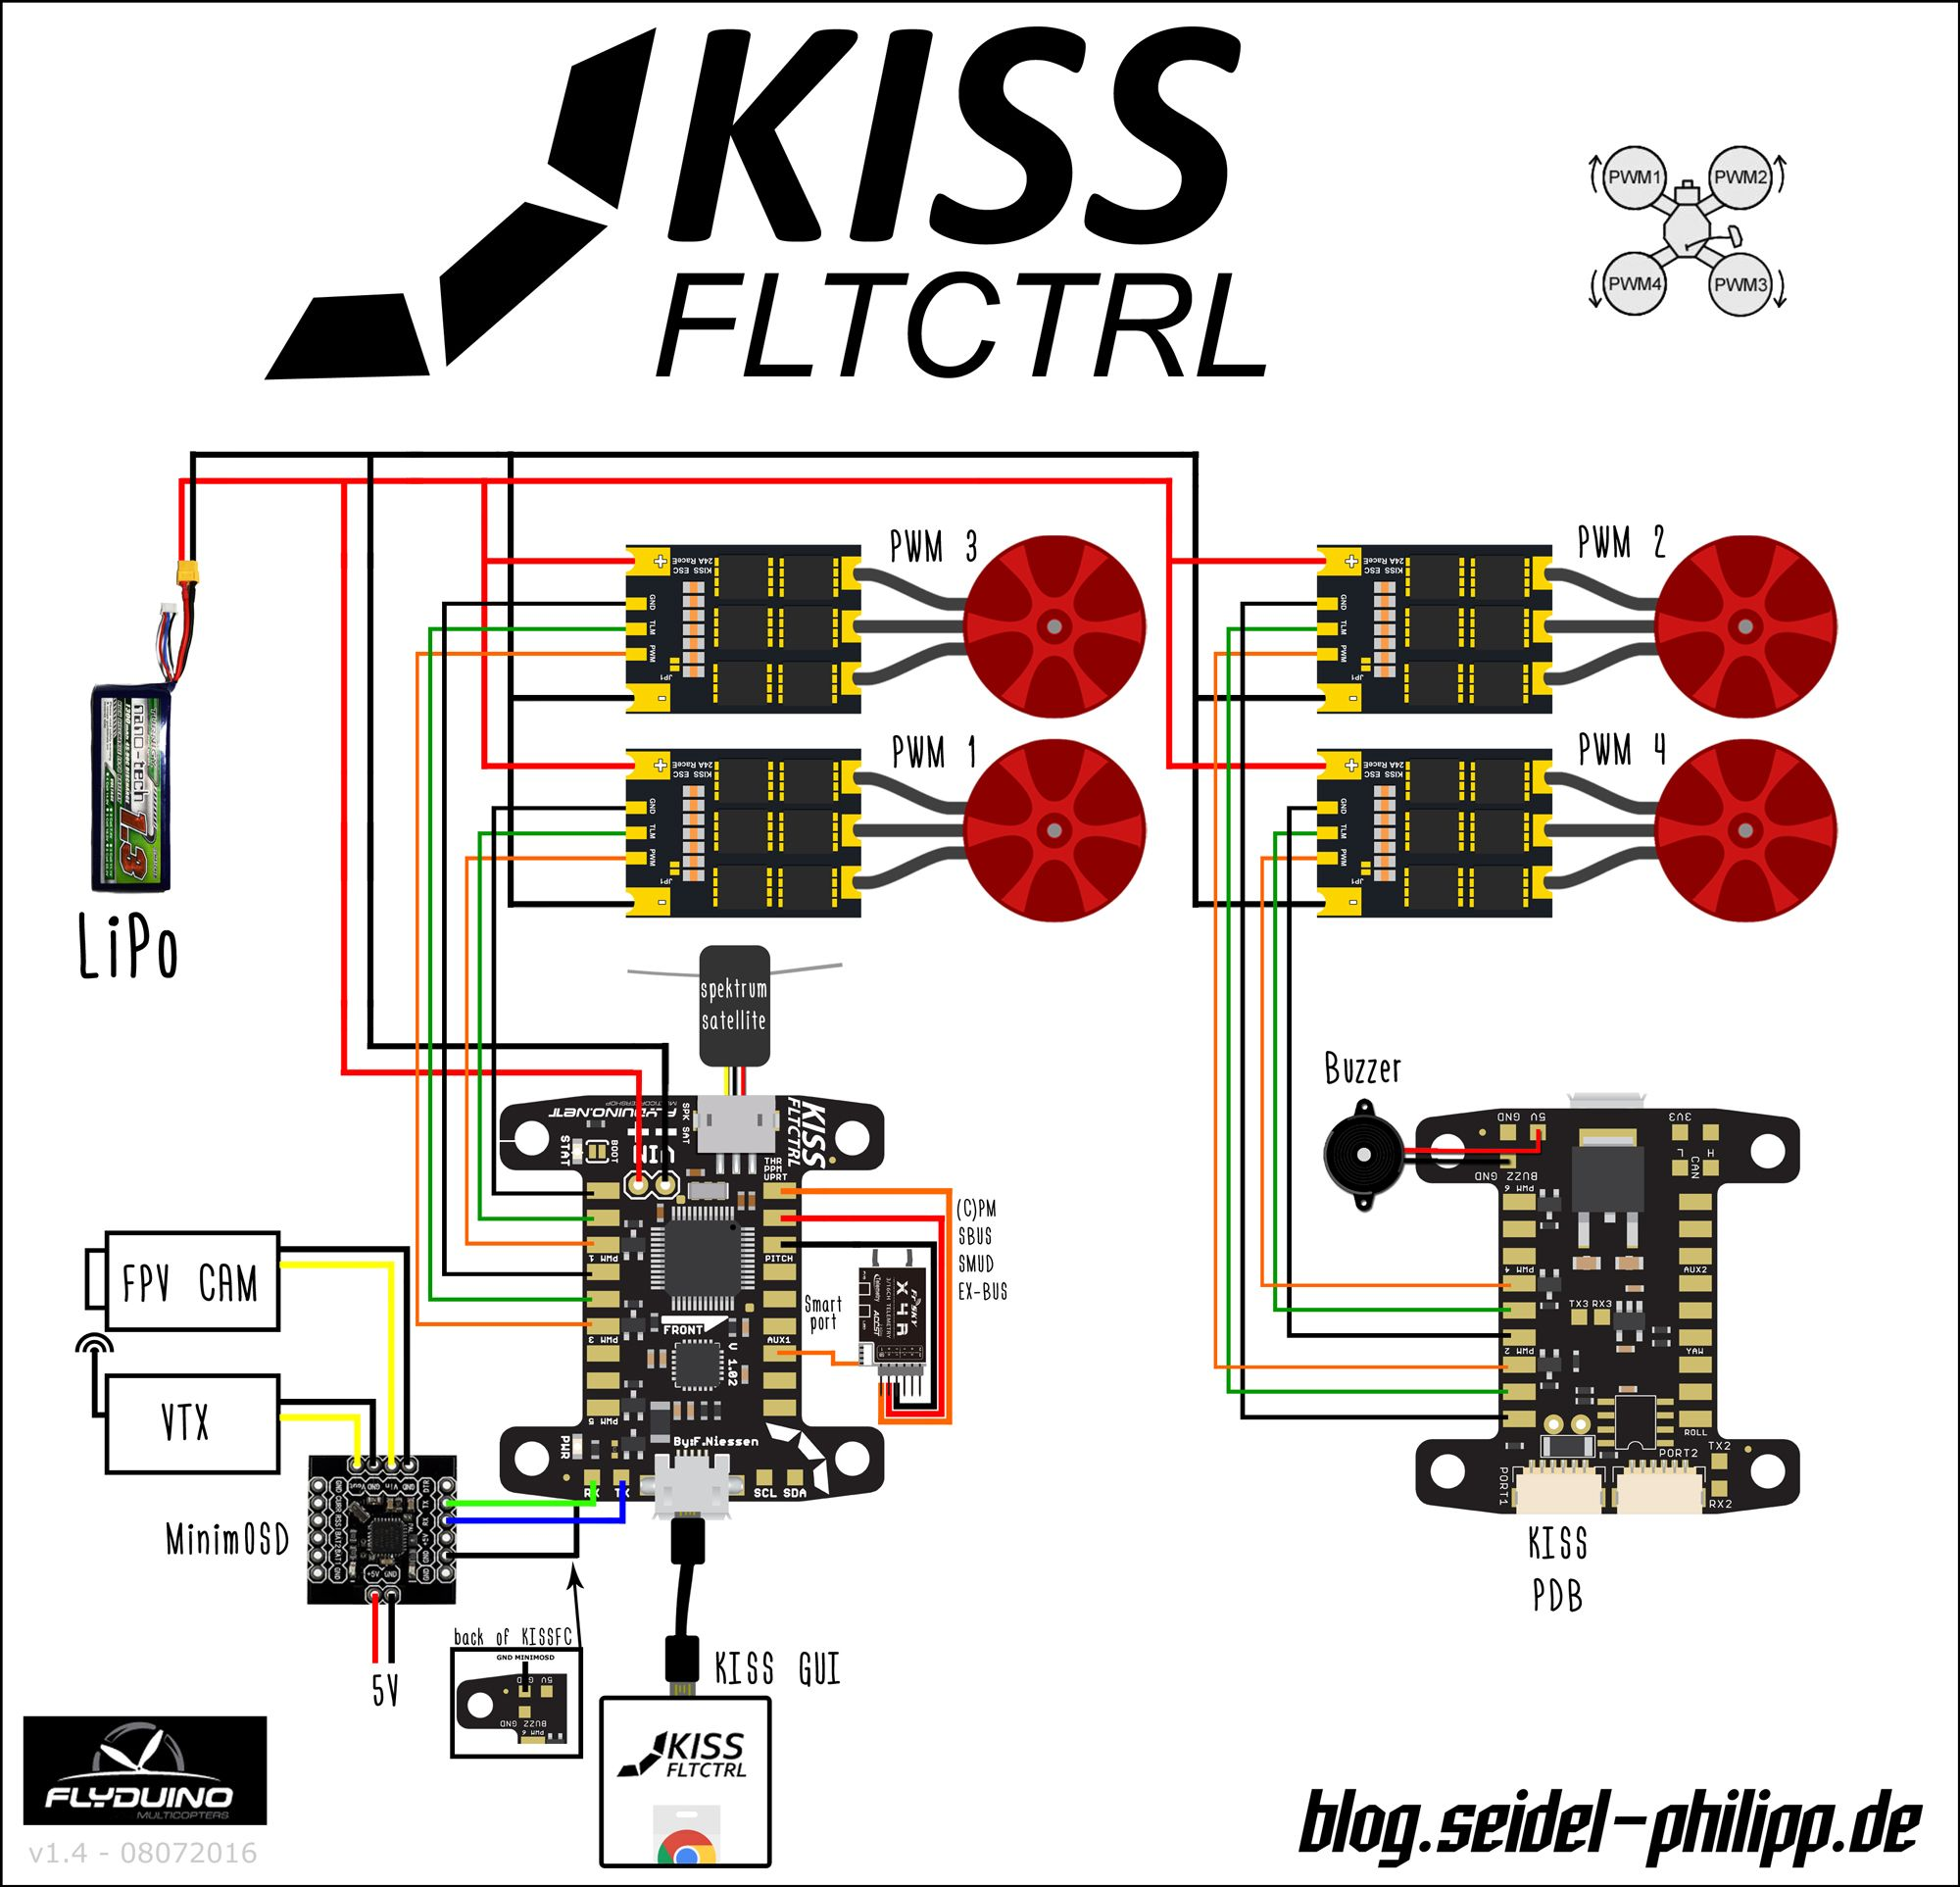 f1907540ae1f7379ead1b0bceca0ceae hubsan h501s x4 brushless fpv ready to fly quadcopter kiss, fpv kiss wind generator wiring diagram at alyssarenee.co